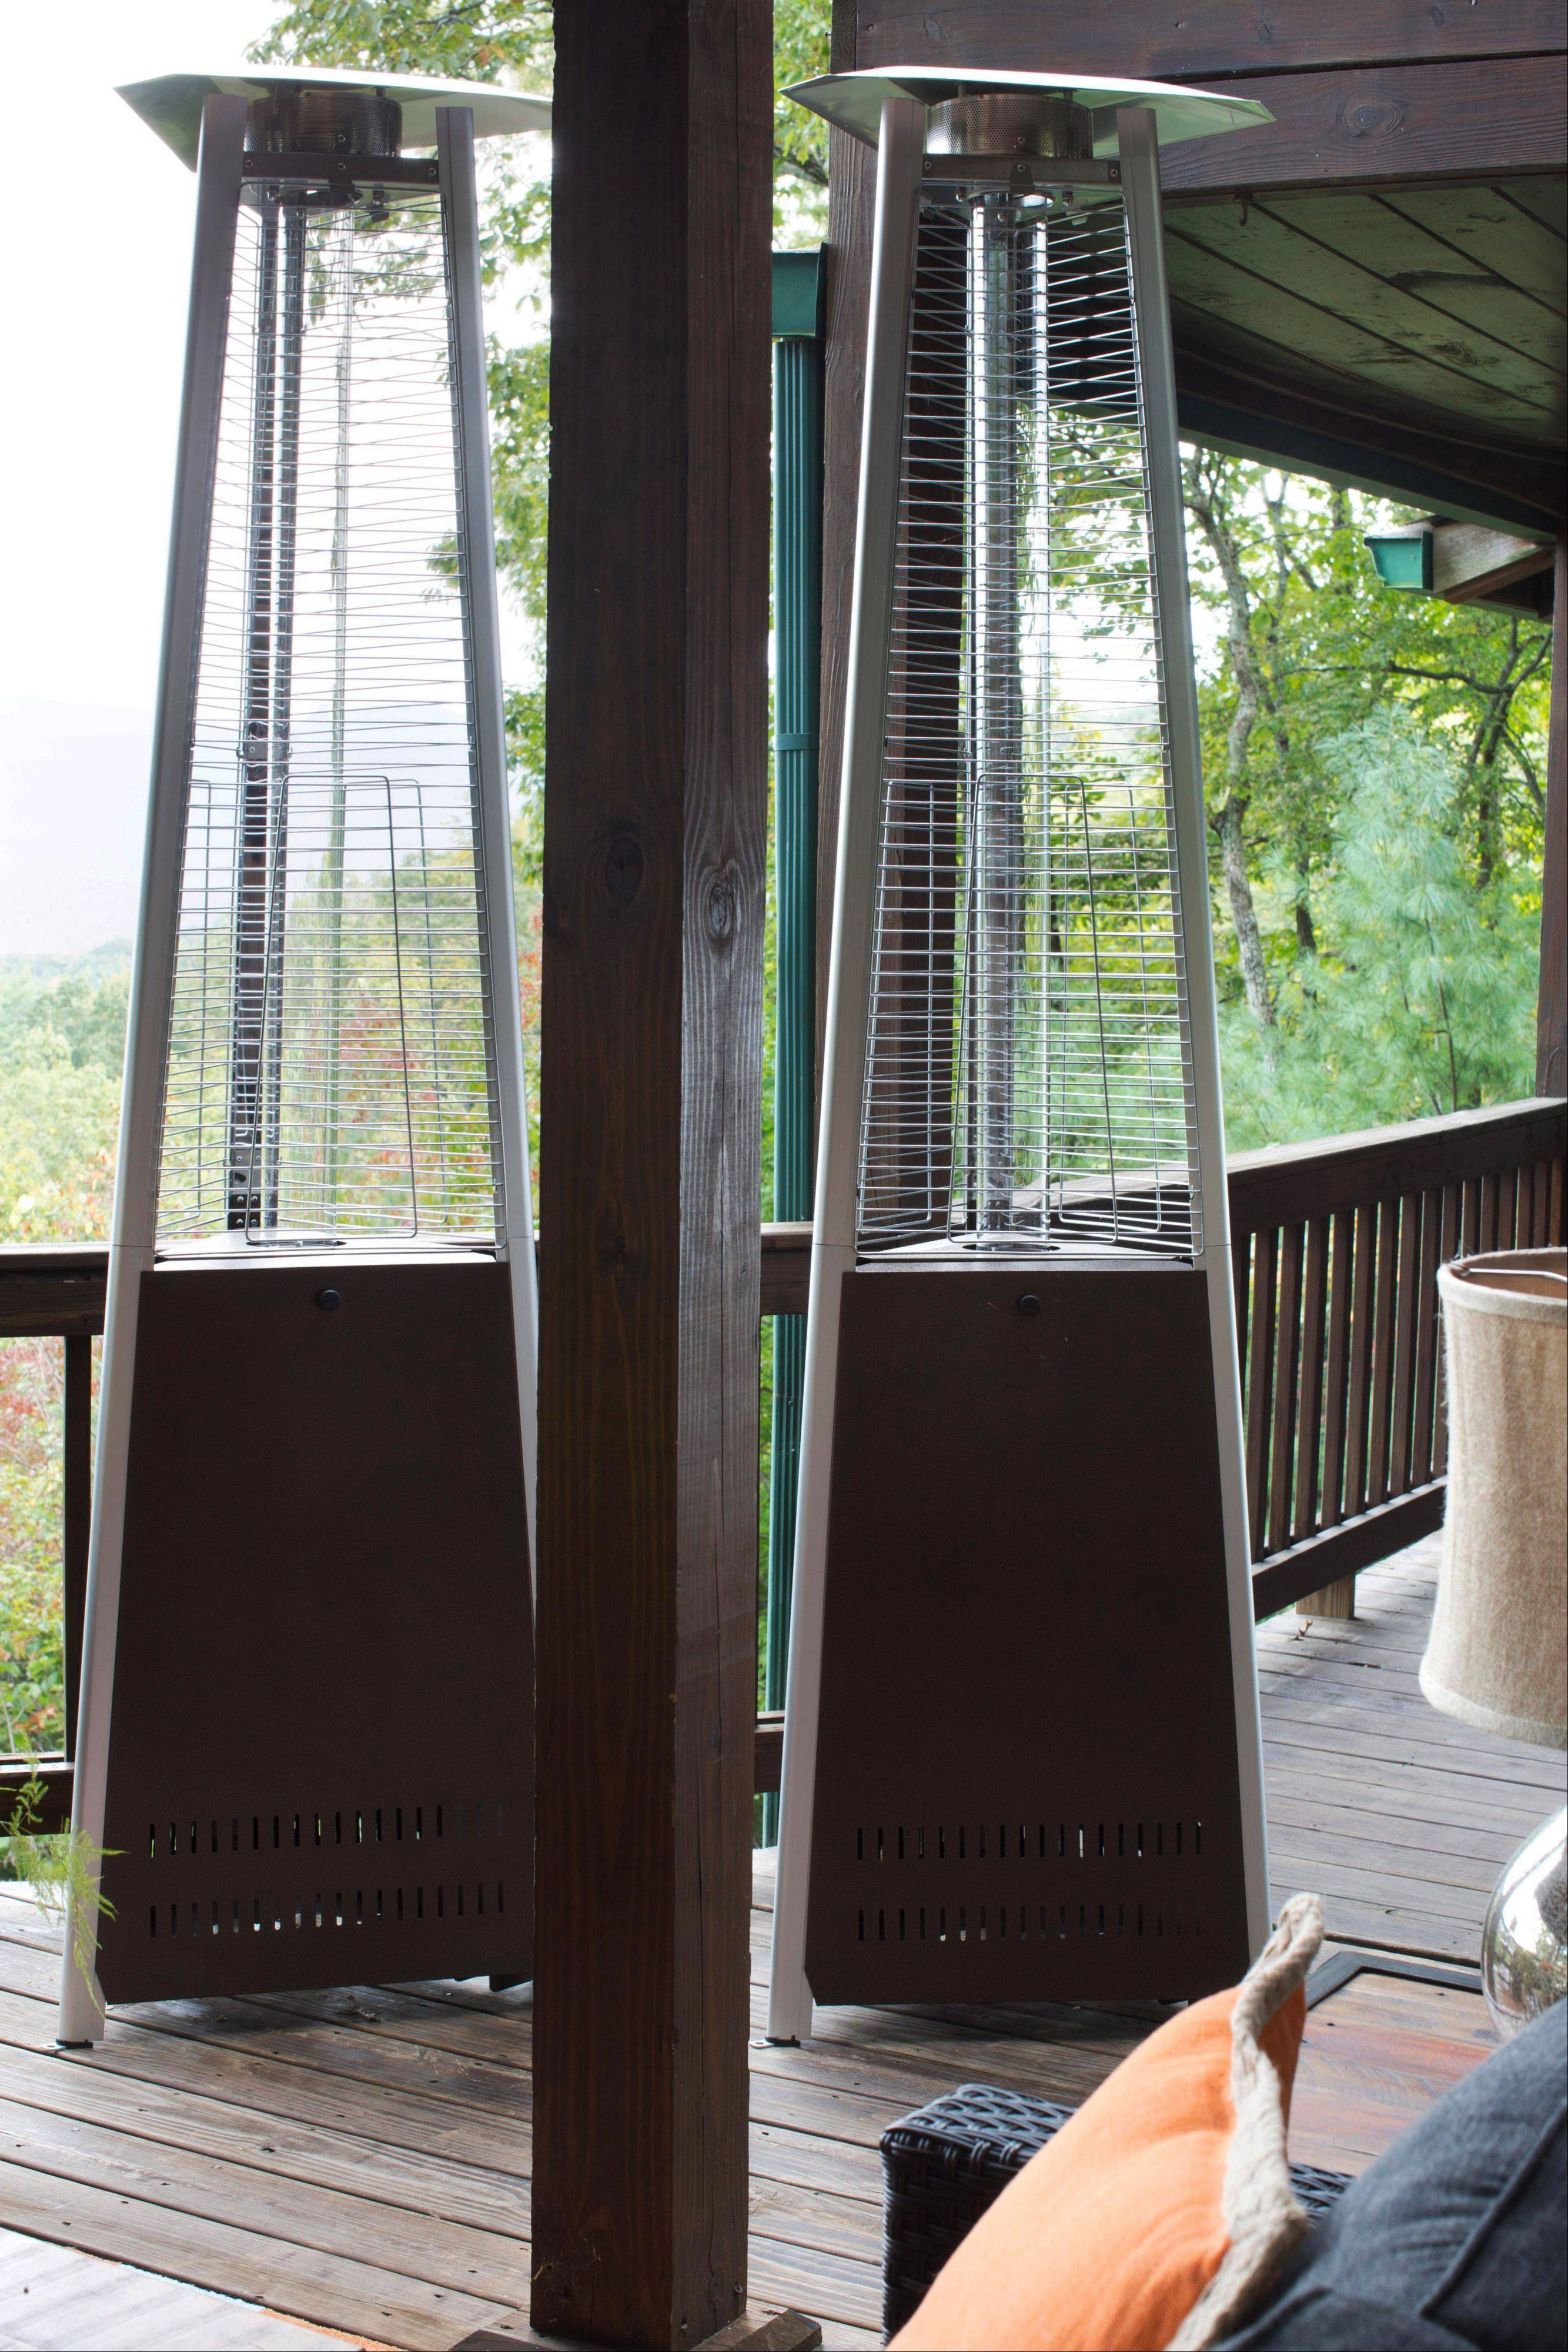 Flynn keeps sculptural outdoor heaters standing by his covered outdoor living room. Should the weather become cold, these easily wheel back and, bringing the proper amount of heat wherever it's needed.